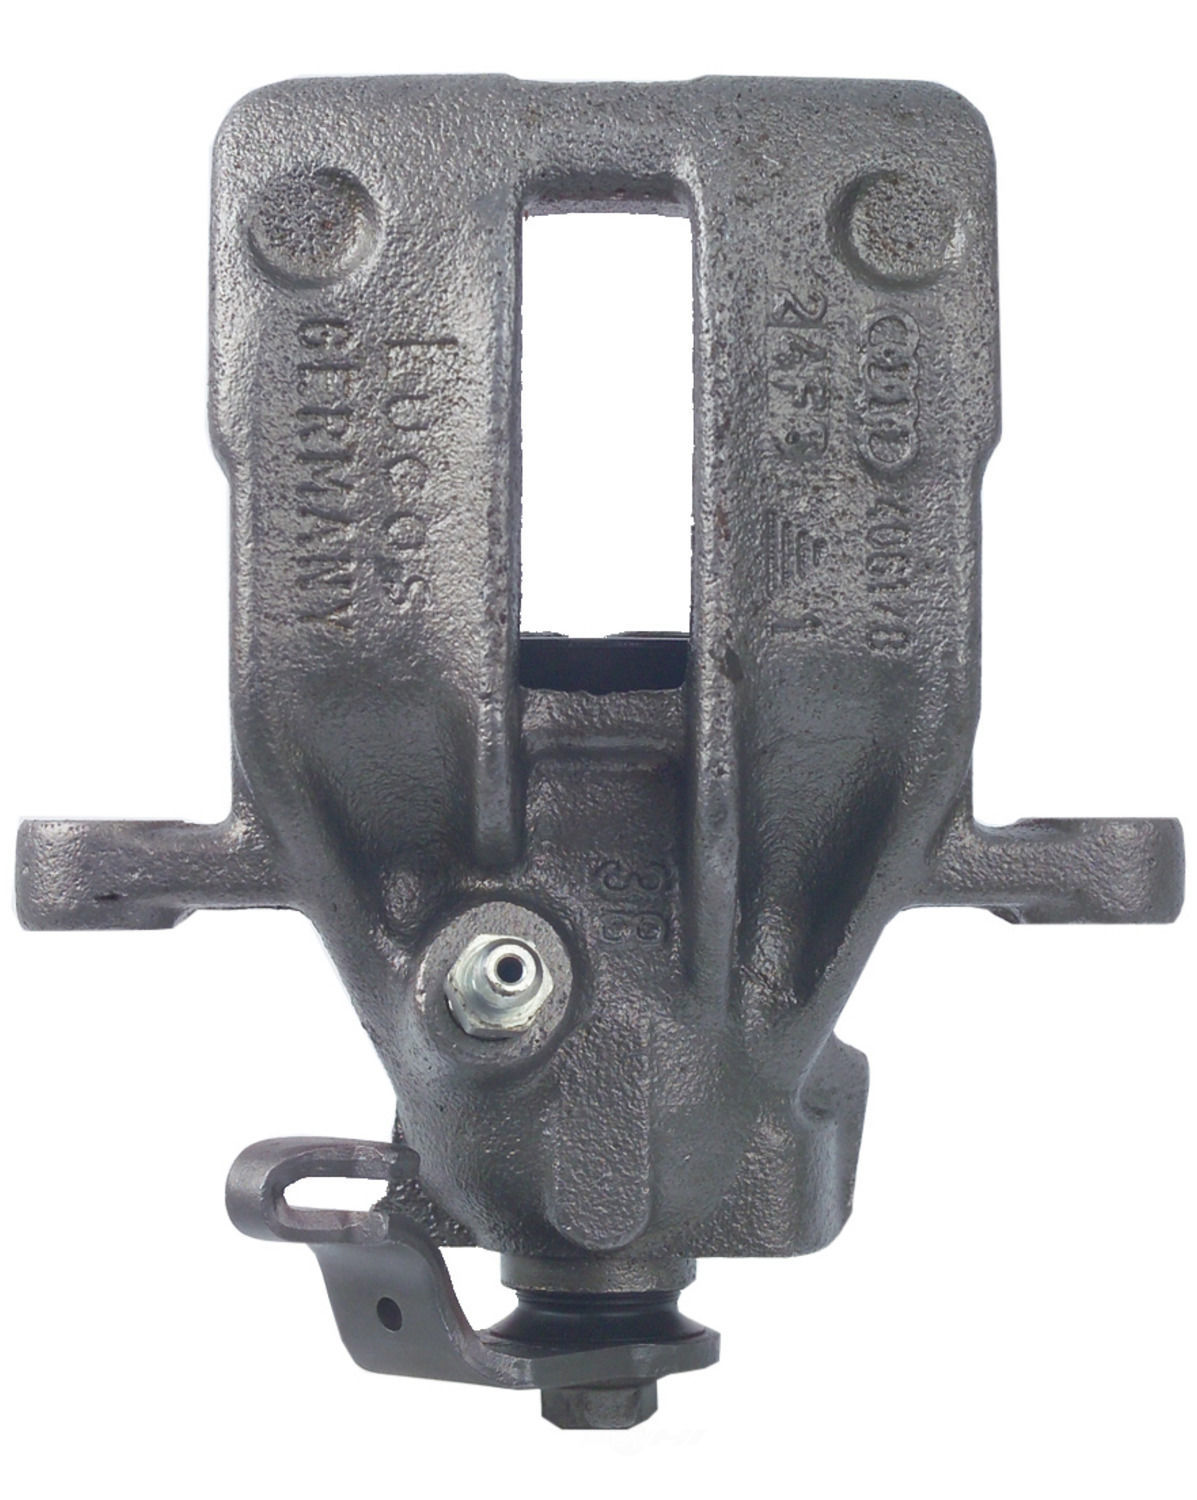 CARDONE/A-1 CARDONE - Reman Friction Choice Caliper (Rear Right) - A1C 19-1980